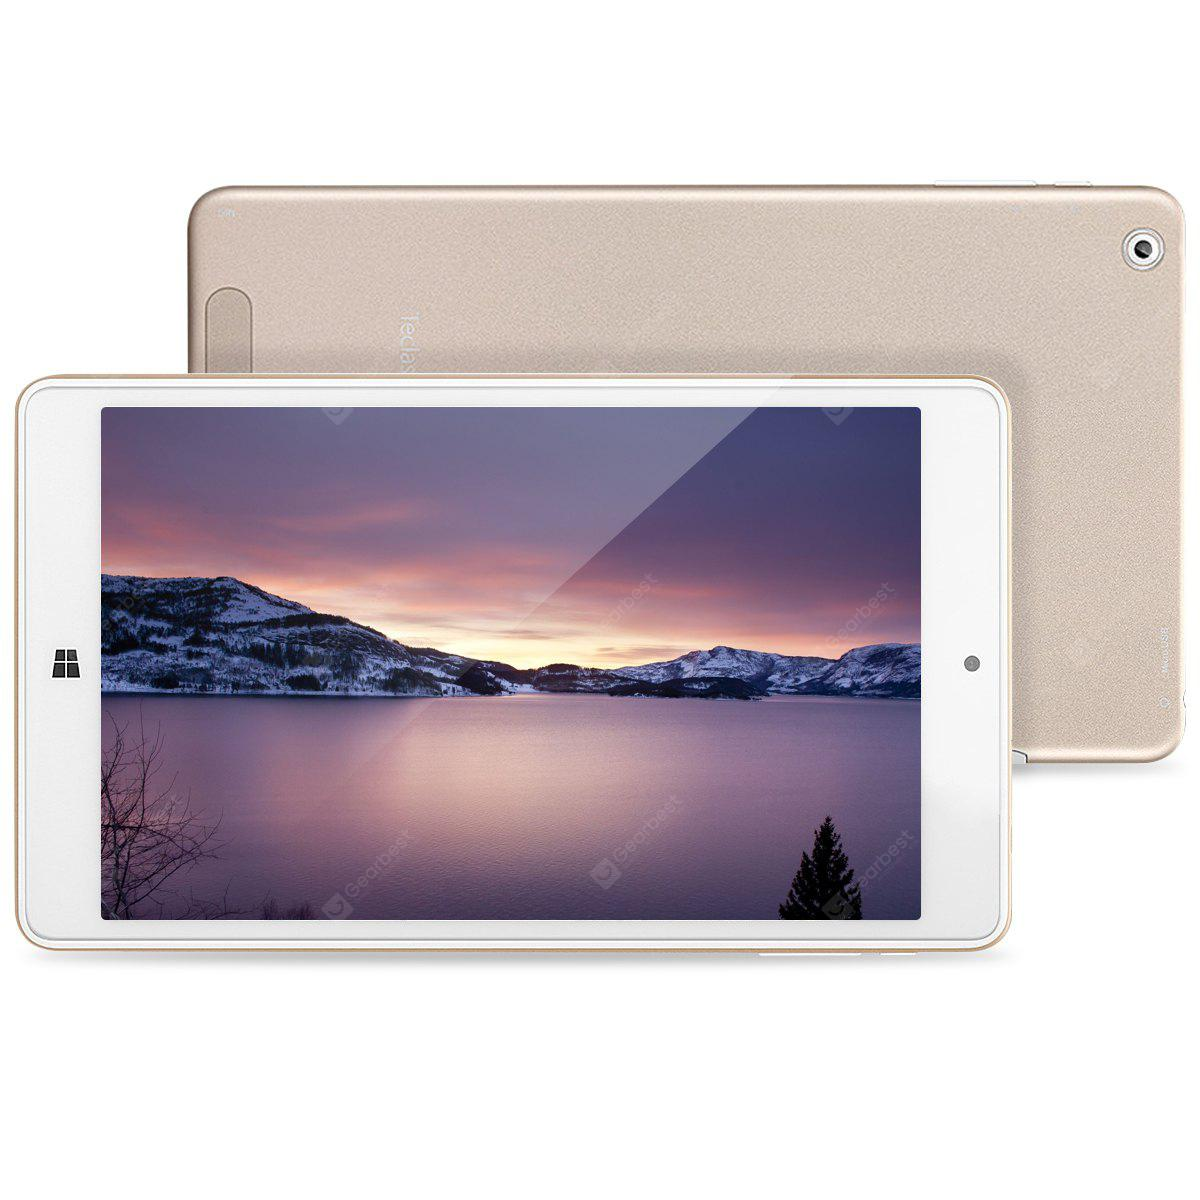 Teclast X80 Power 8.0 inch IPS Support Windows 10 + Android 5.1 Intel Cherry Trail Z8350 64bit Quad Core 2+32G Tablet PC Golden